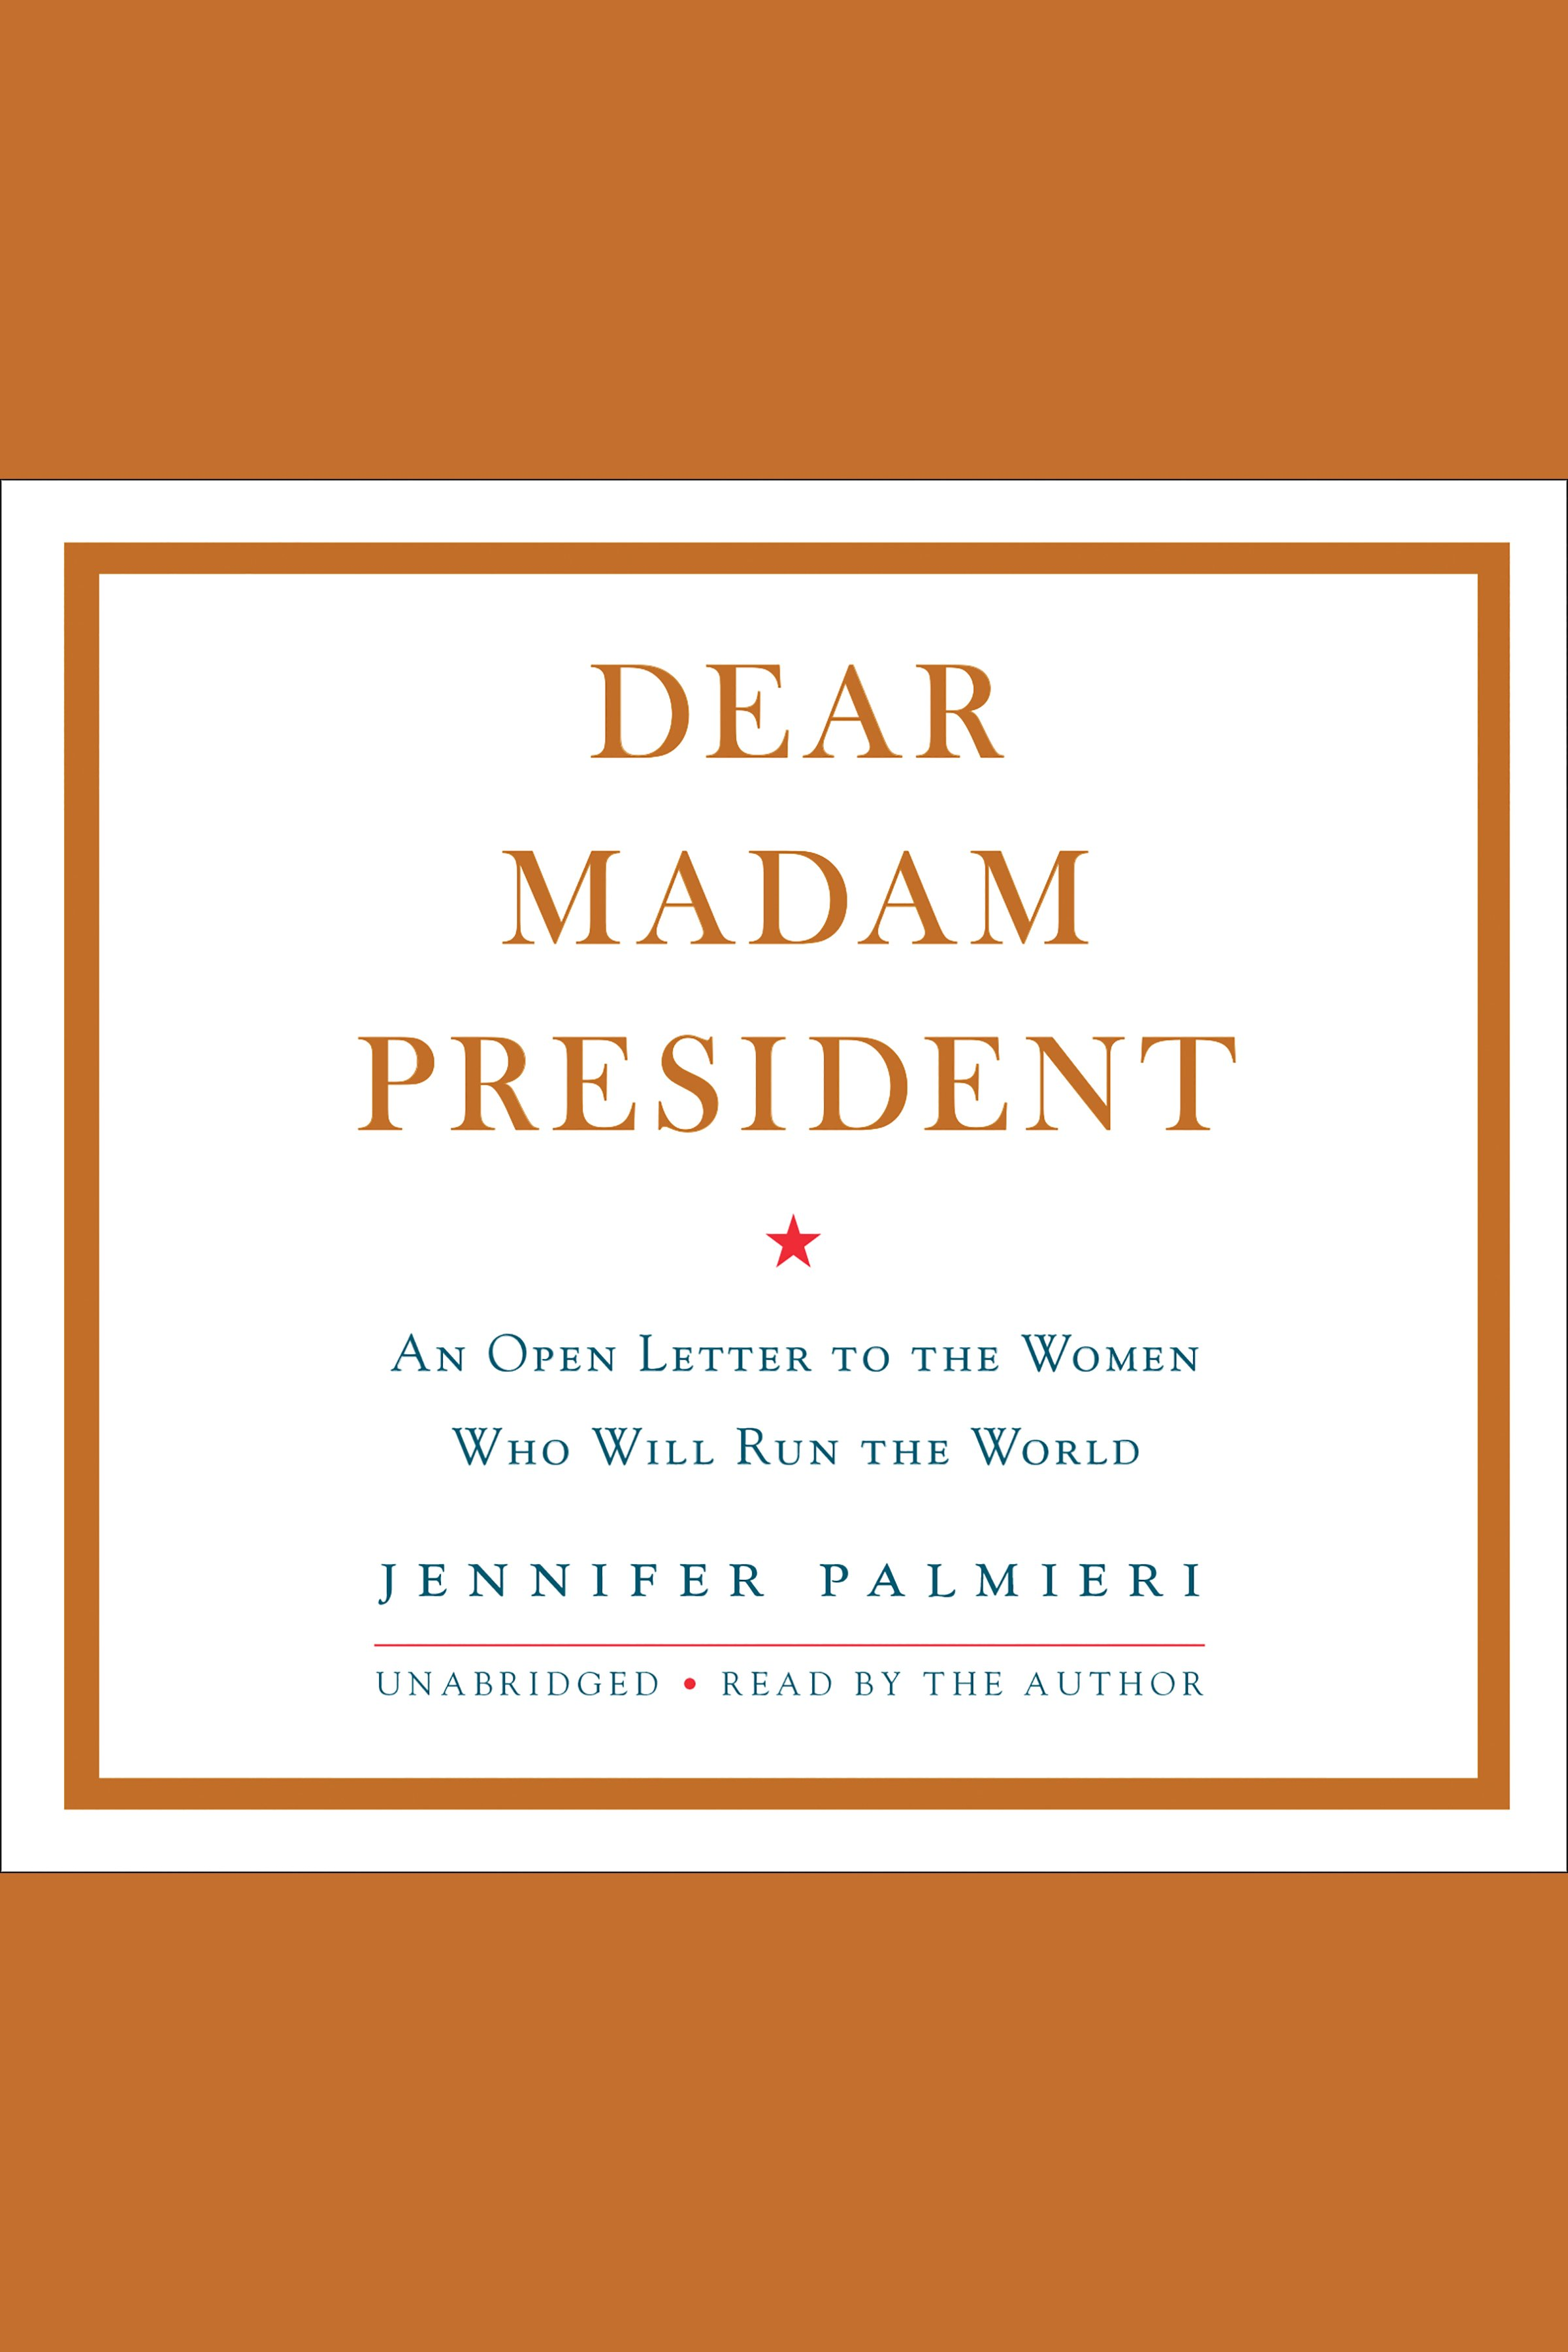 Dear Madam President [EAUDIOBOOK]: An Open Letter to the Women Who Will Run the World